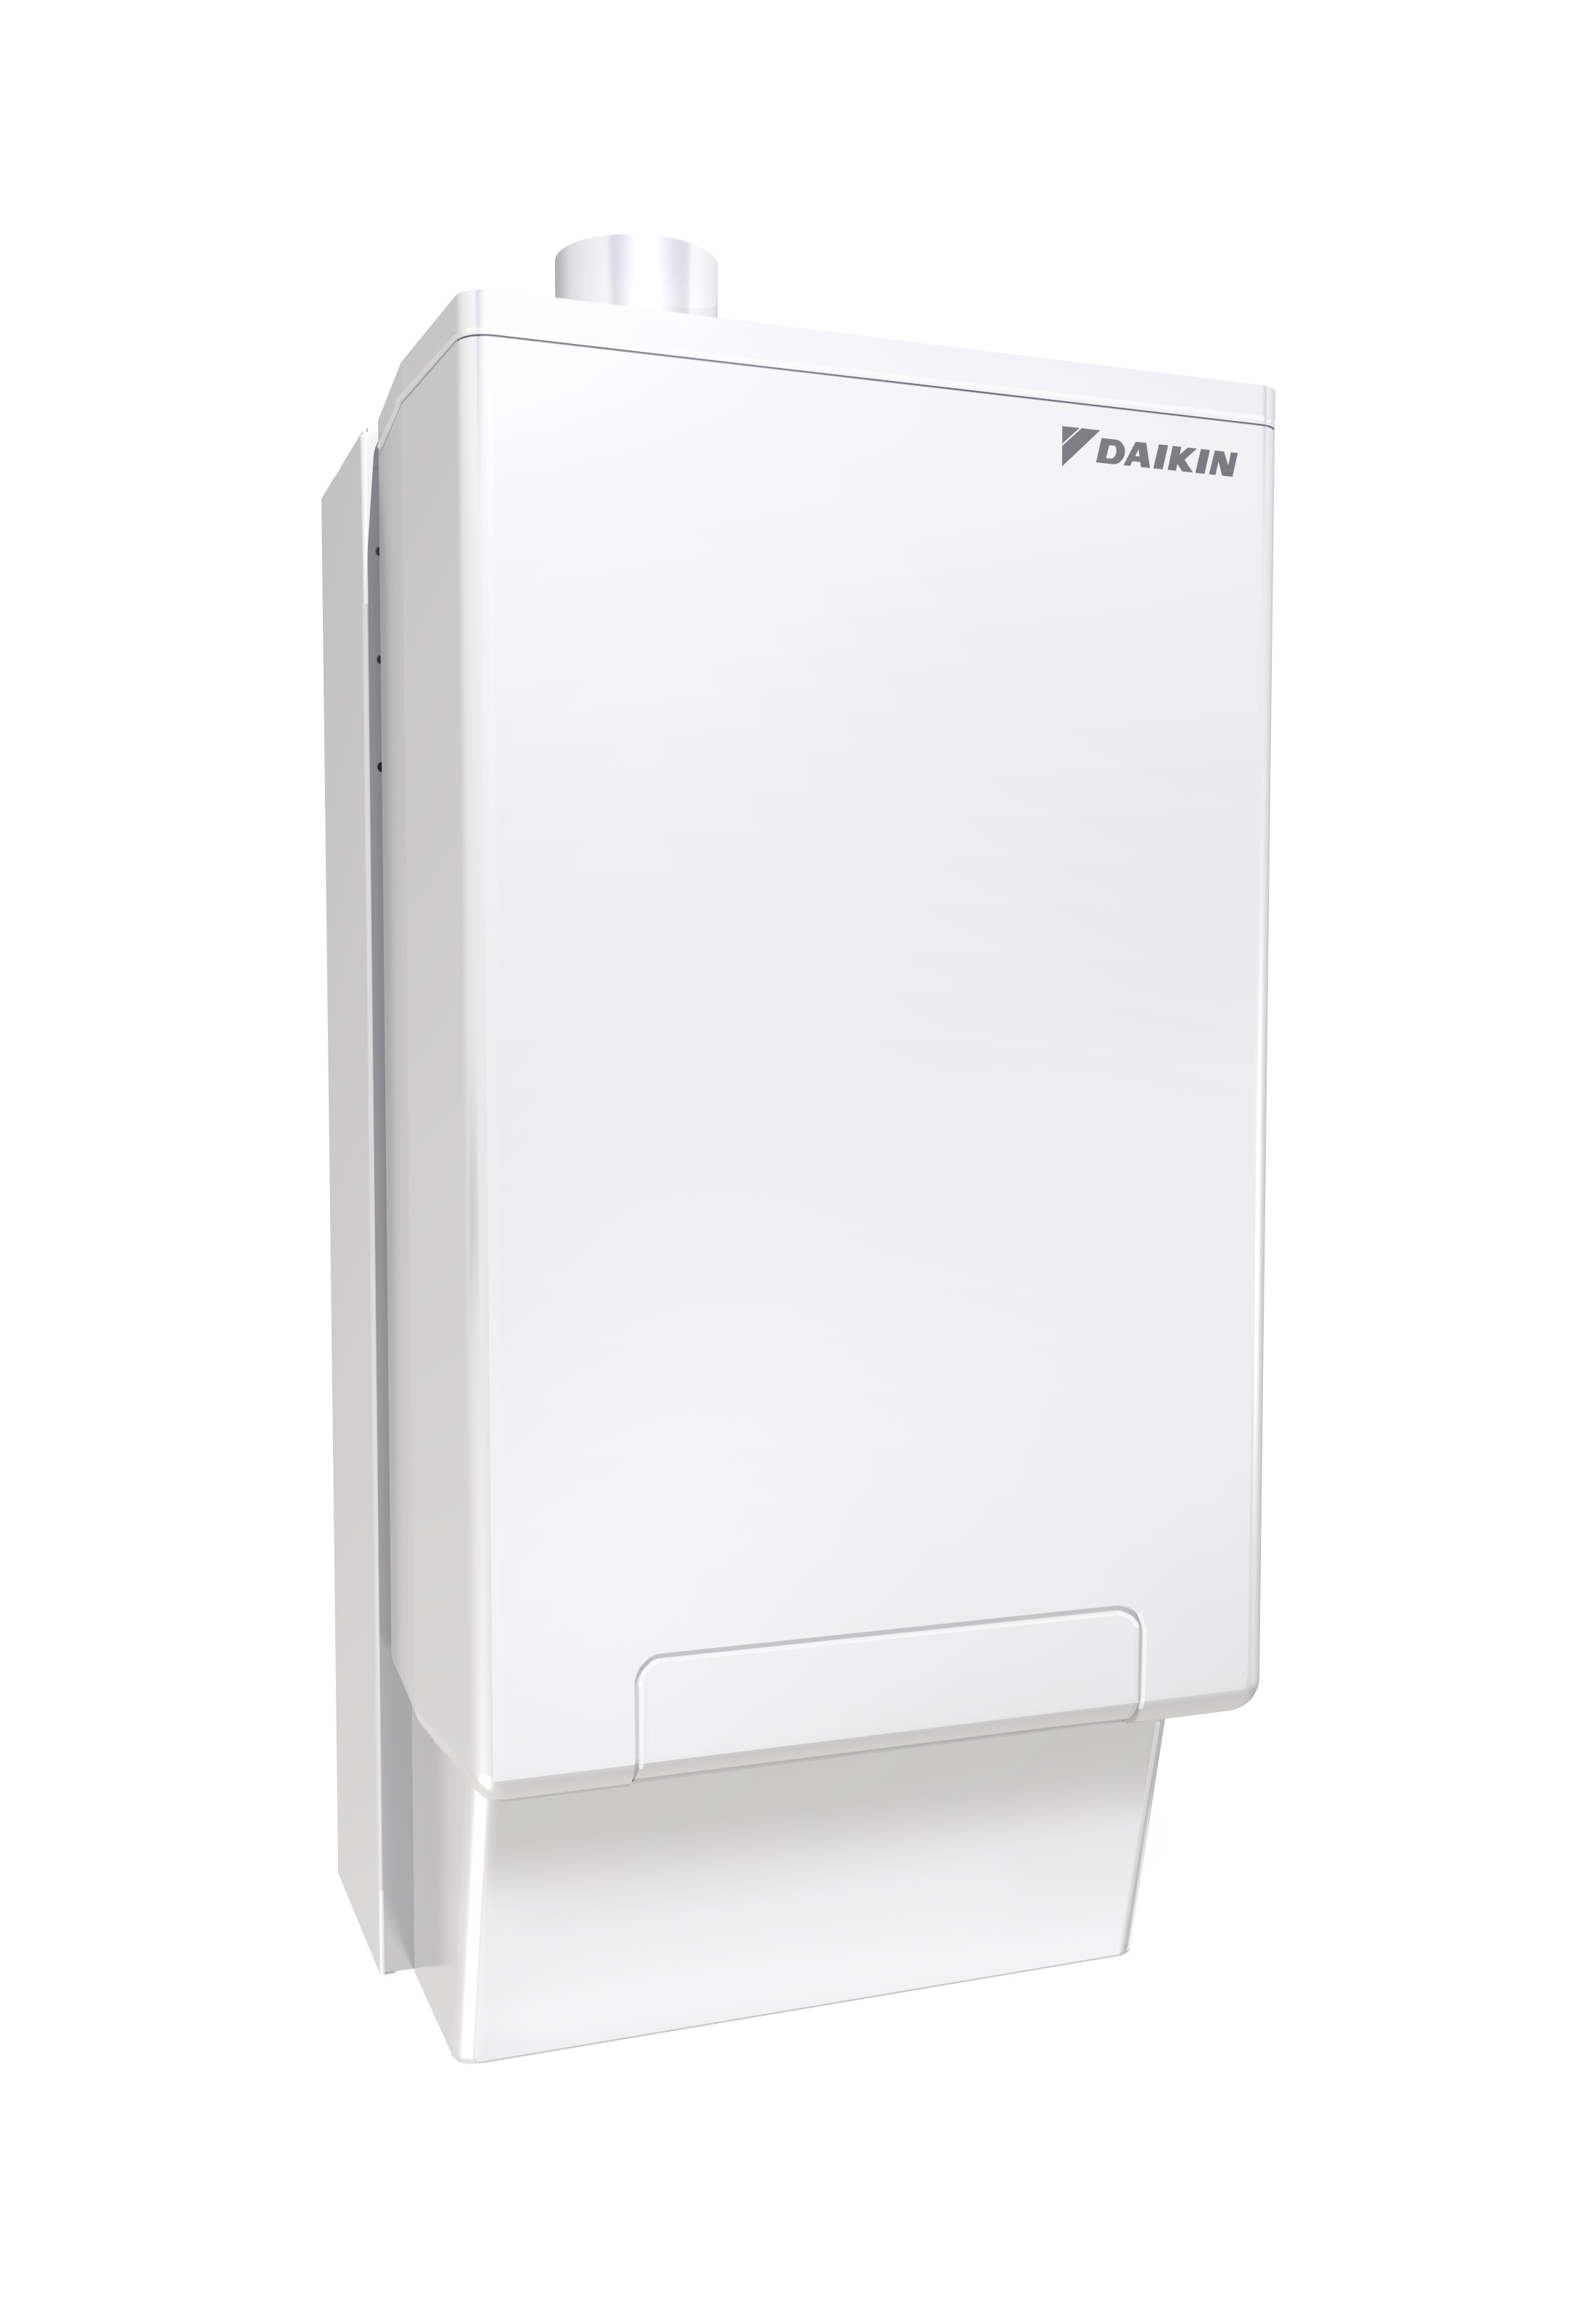 Daikin Altherma hybrid heat pump_Product pictures (1)